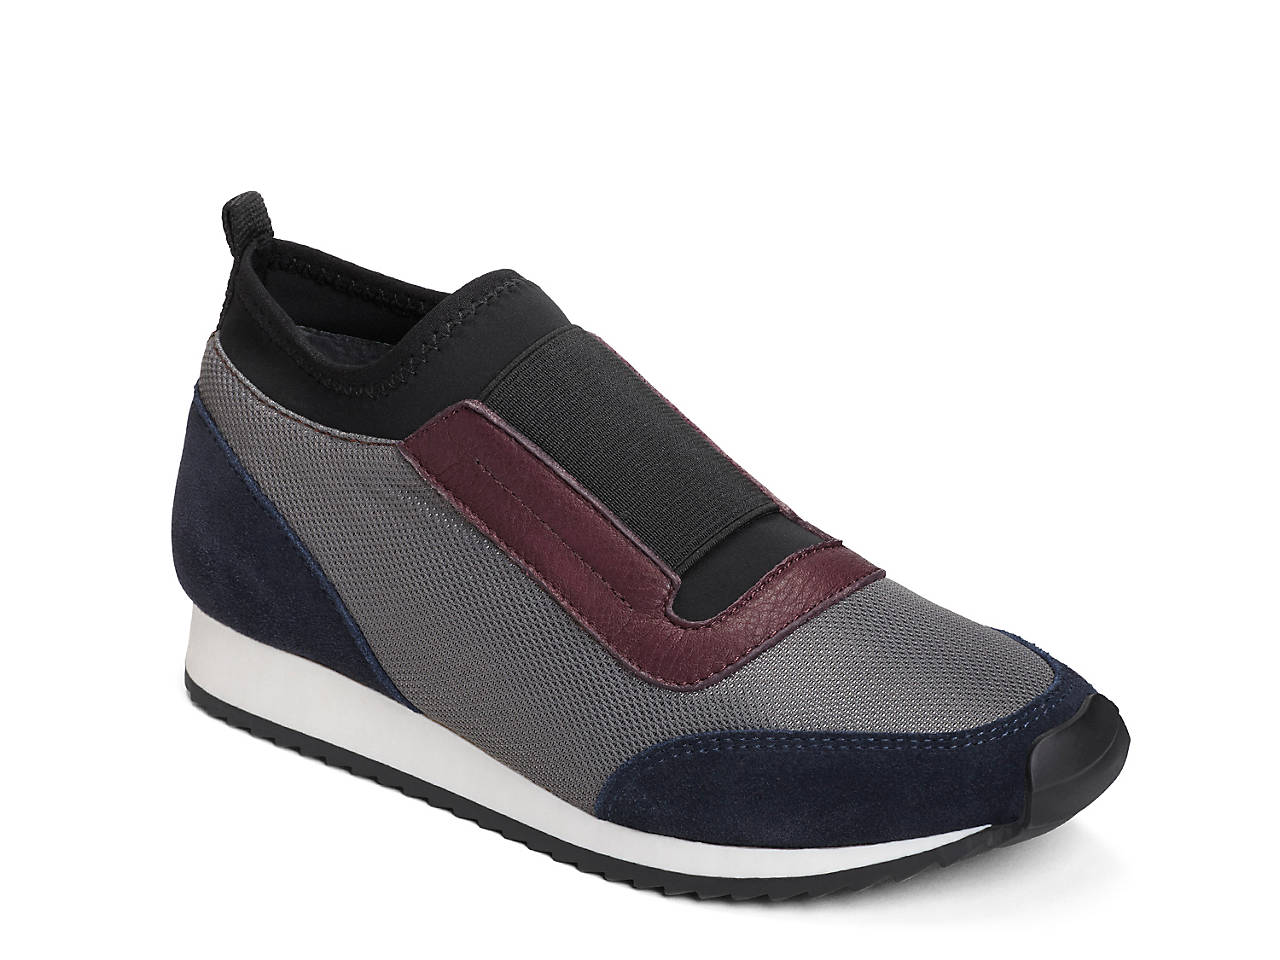 460eda37d27ef Pantheon Slip-On Sneaker